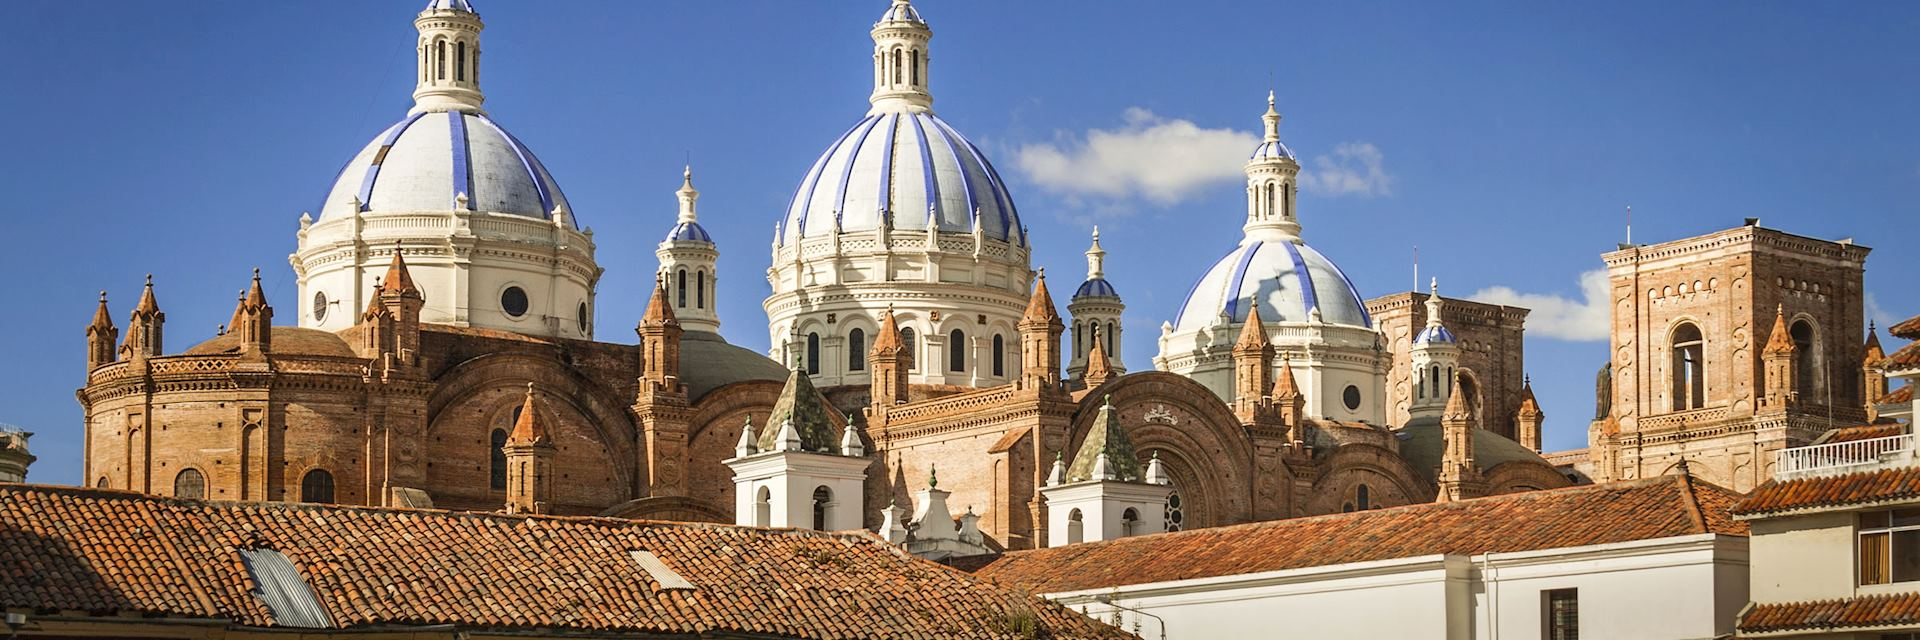 The Cathedral of the Immaculate Conception in Cuenca